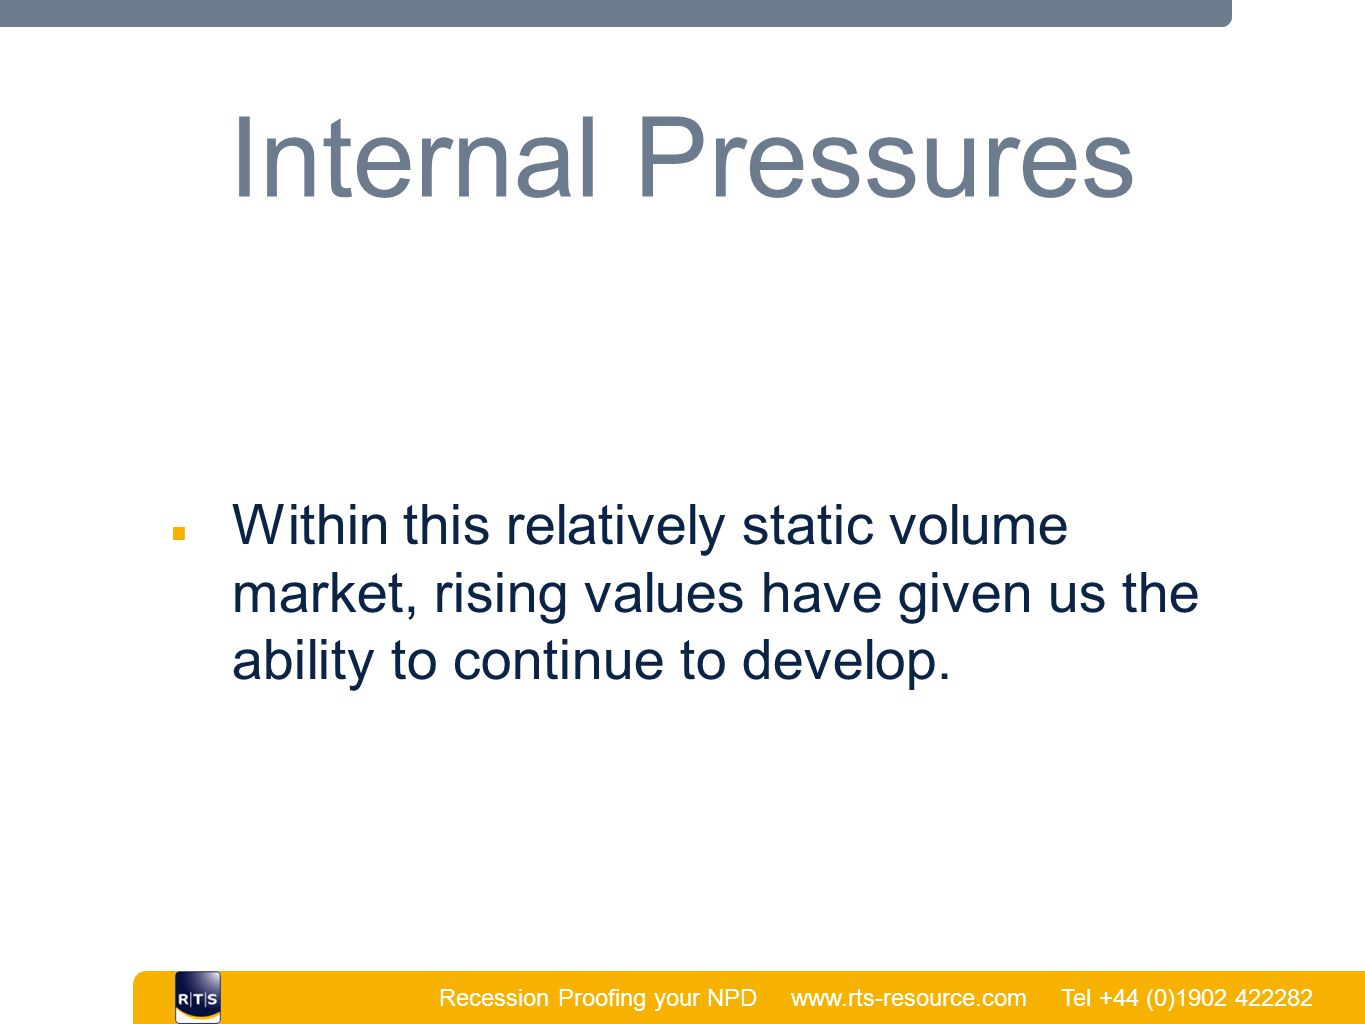 Recession Proofing your NPD www.rts-resource.com Tel +44 (0)1902 422282 | Internal Pressures ■ Within this relatively static volume market, rising val